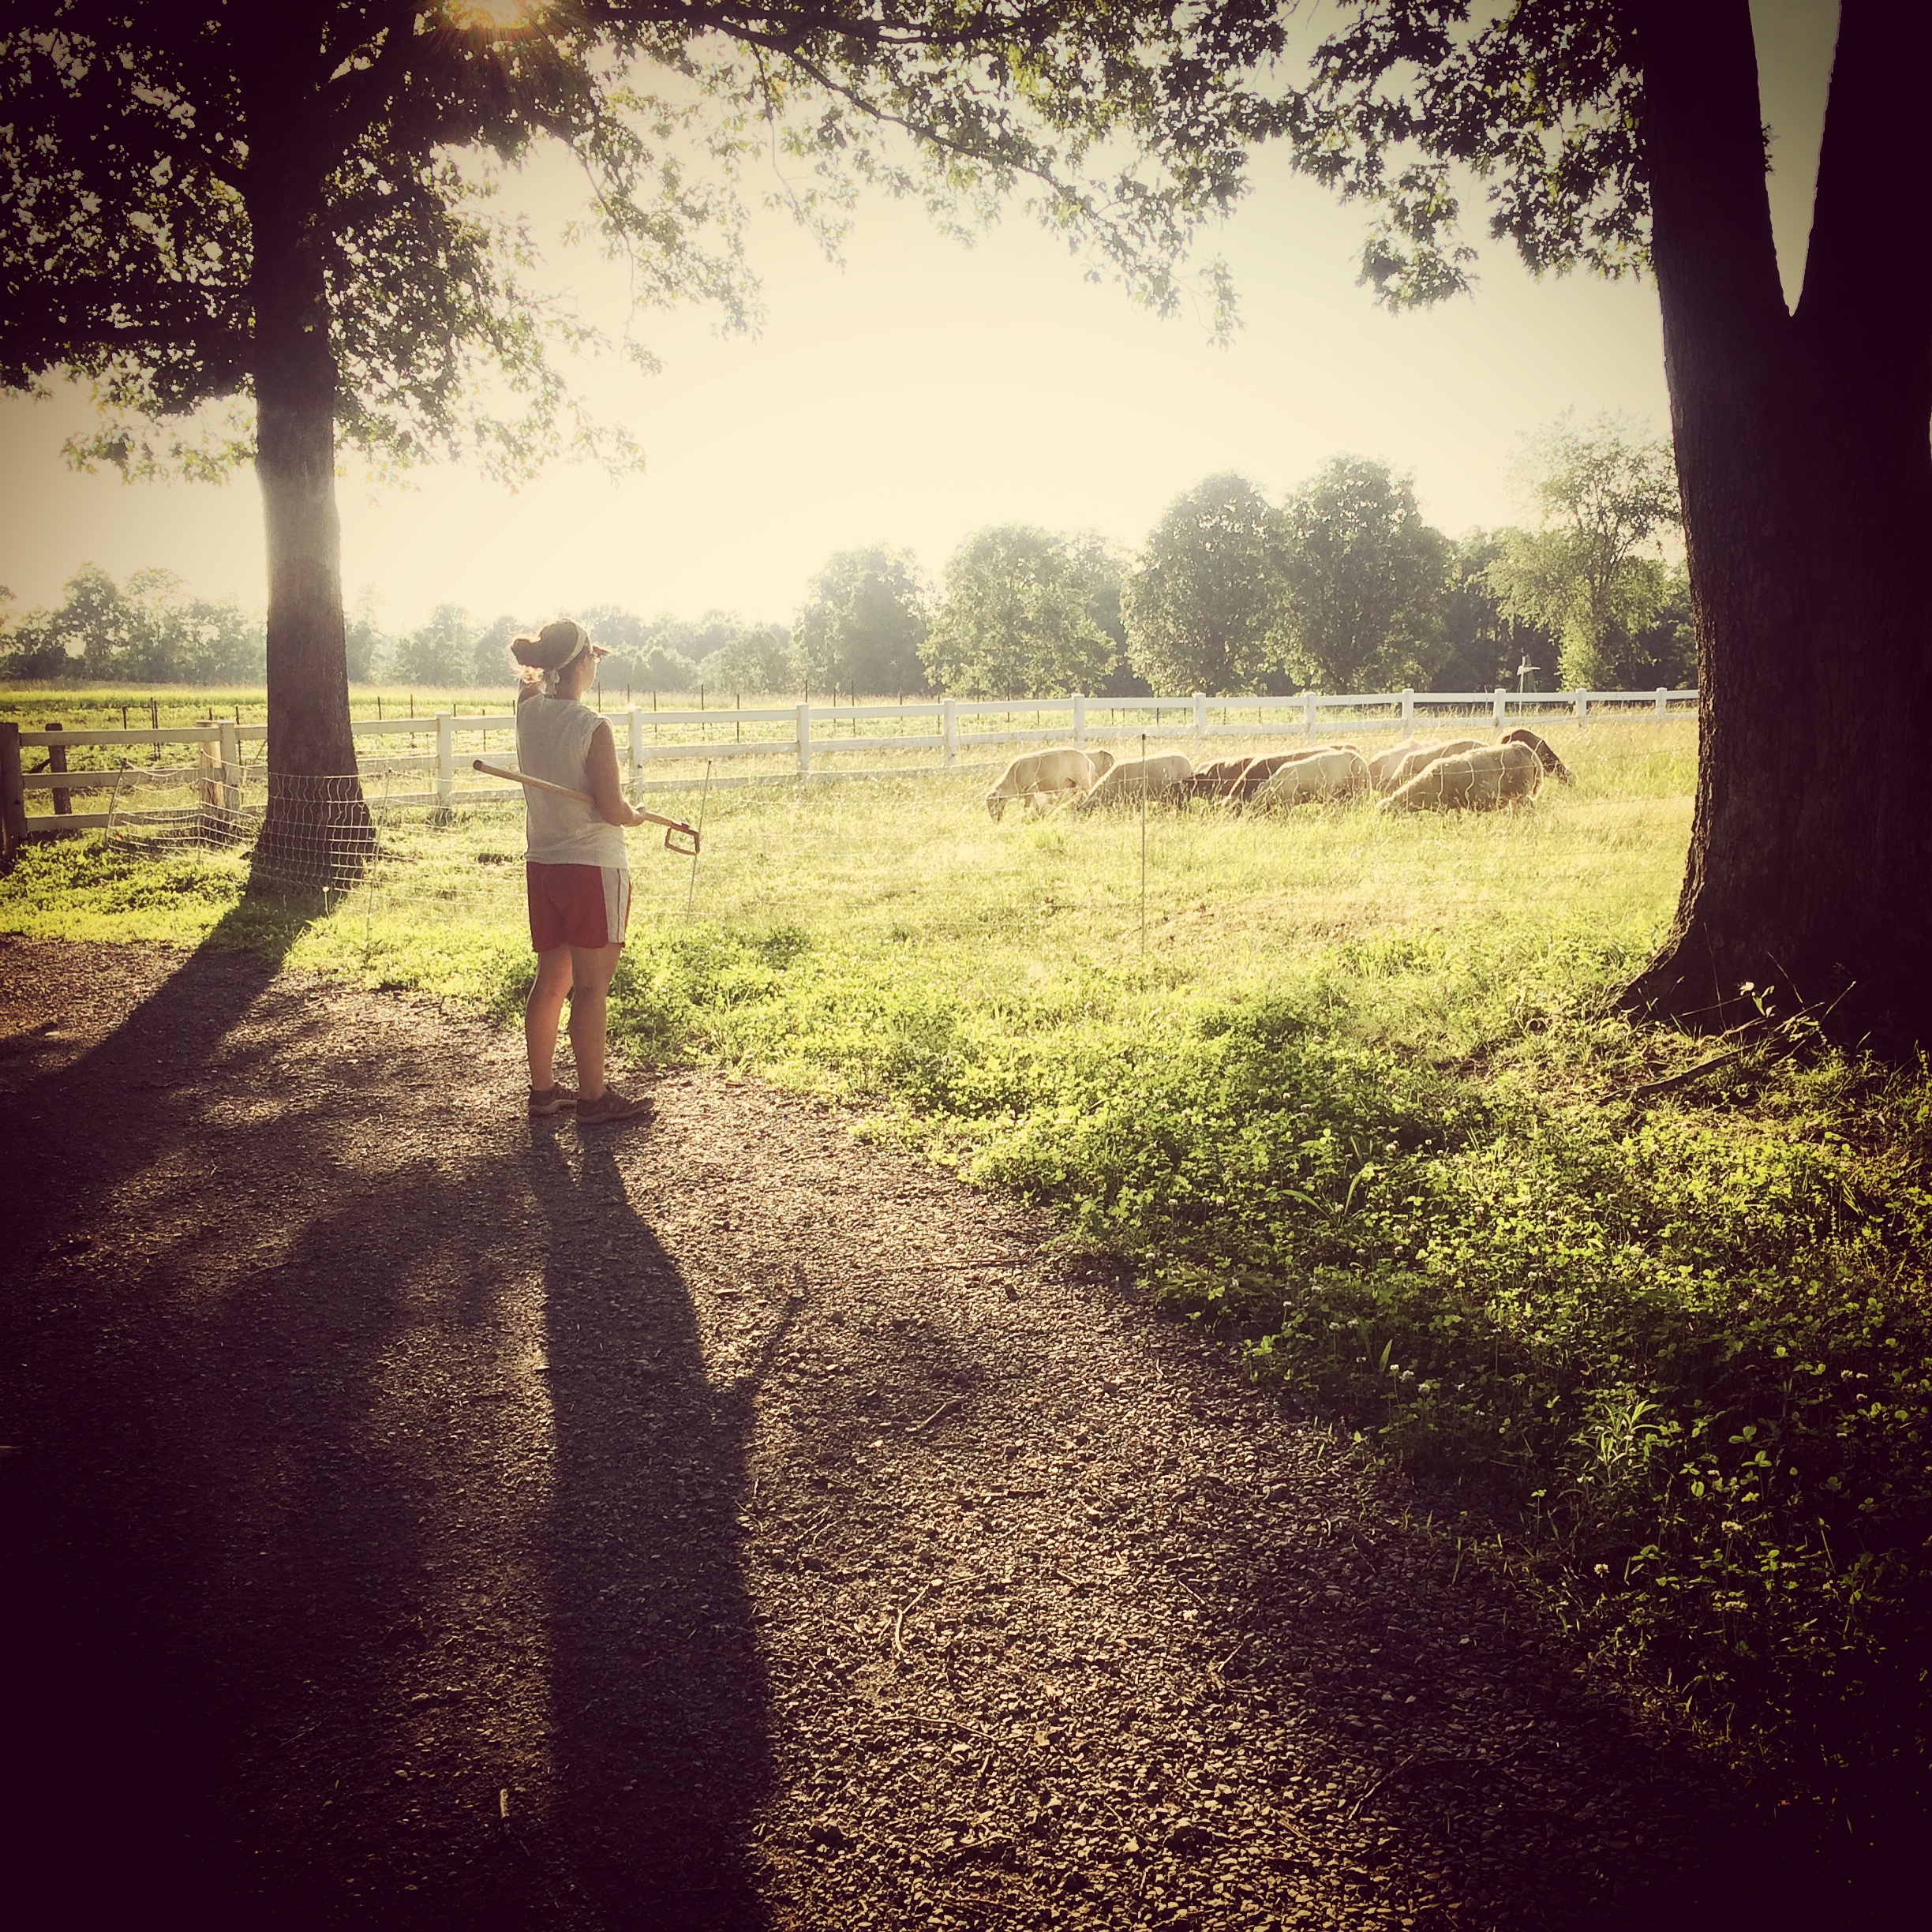 Megan admiring the sheep on our way to how out the cukes and squash!